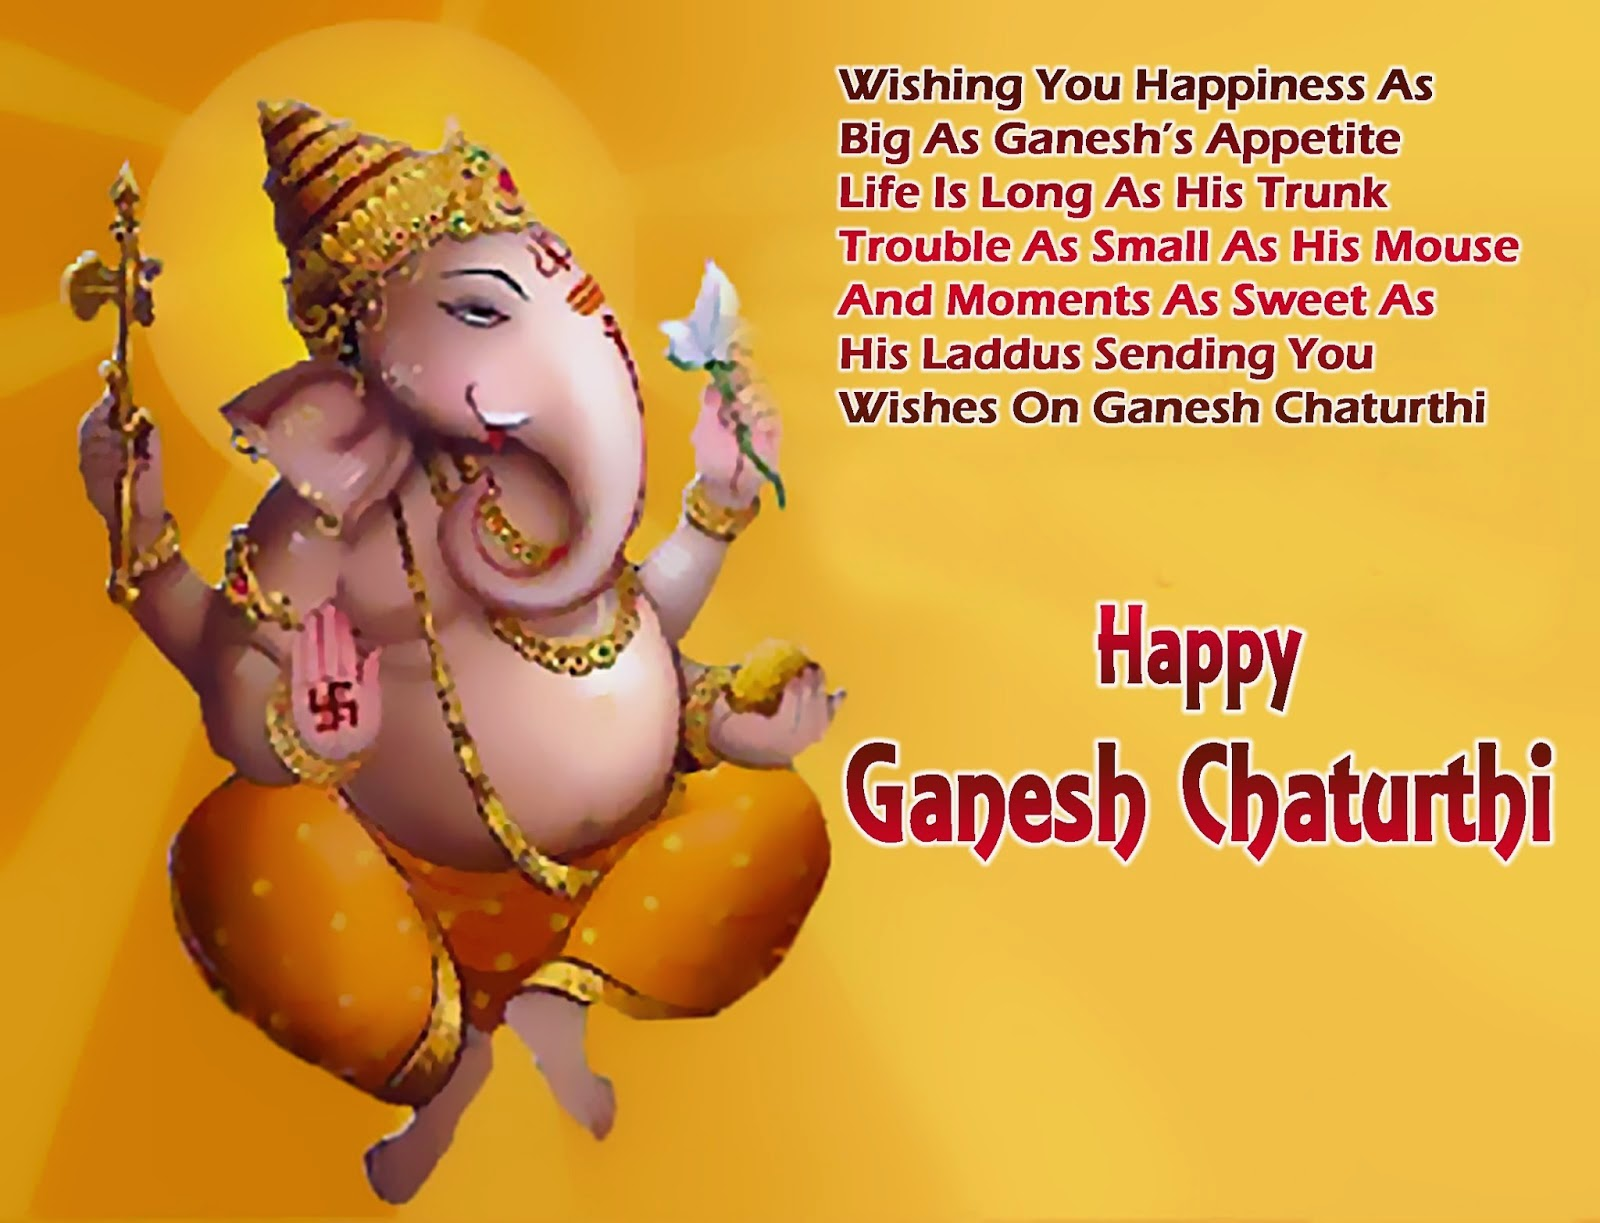 Ganesh-chaturthi-wishes images